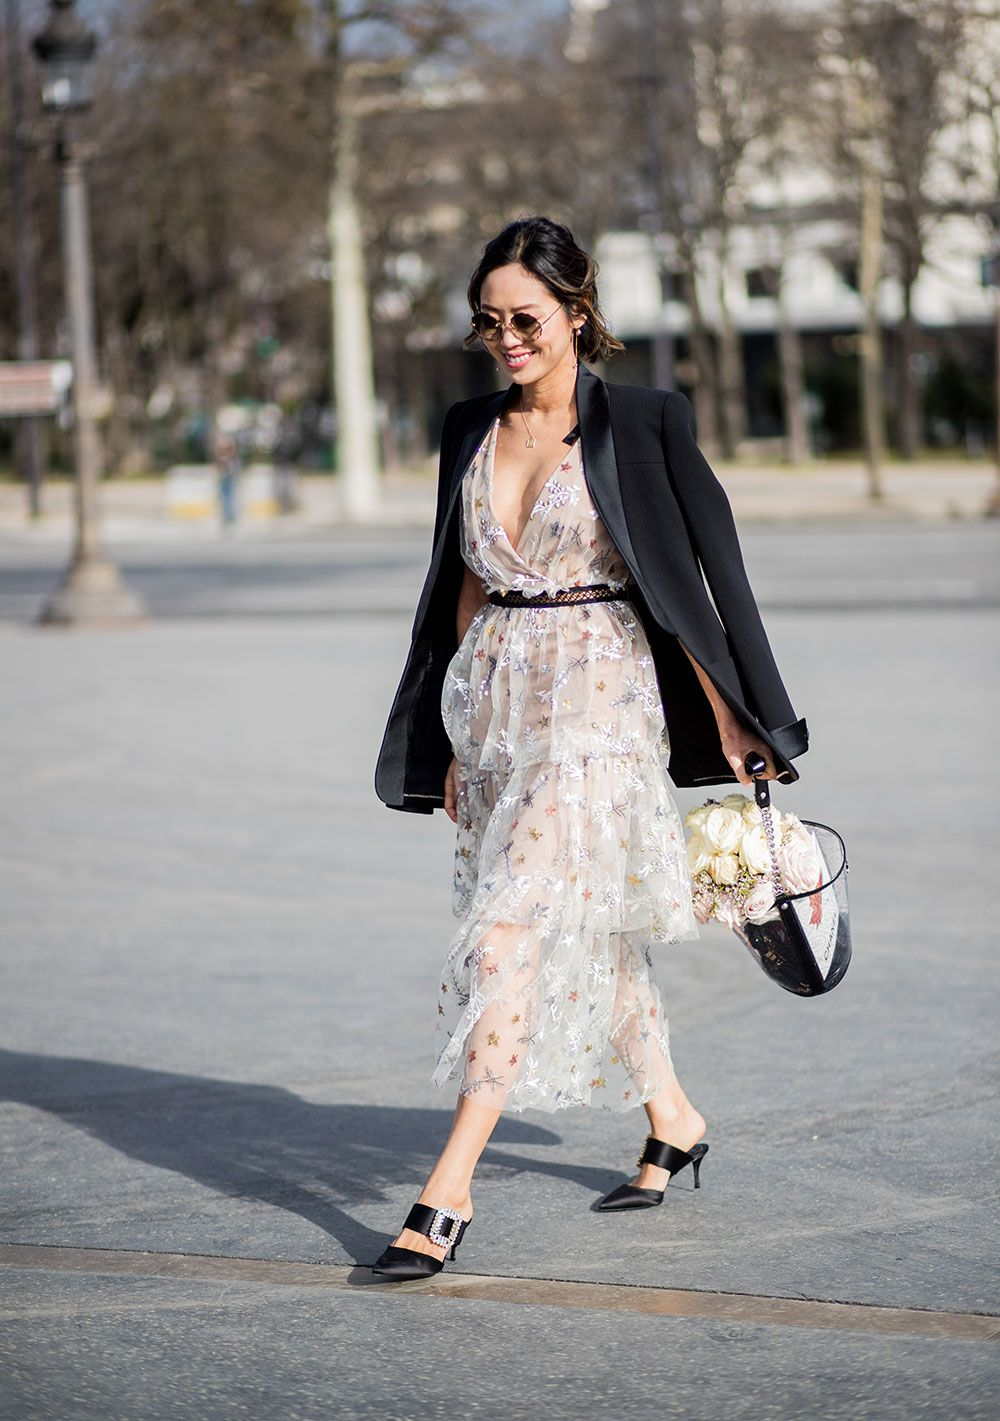 Ultimate Style Guide: What To Wear To Work ThisSpring Ultimate Style Guide: What To Wear To Work ThisSpring new picture